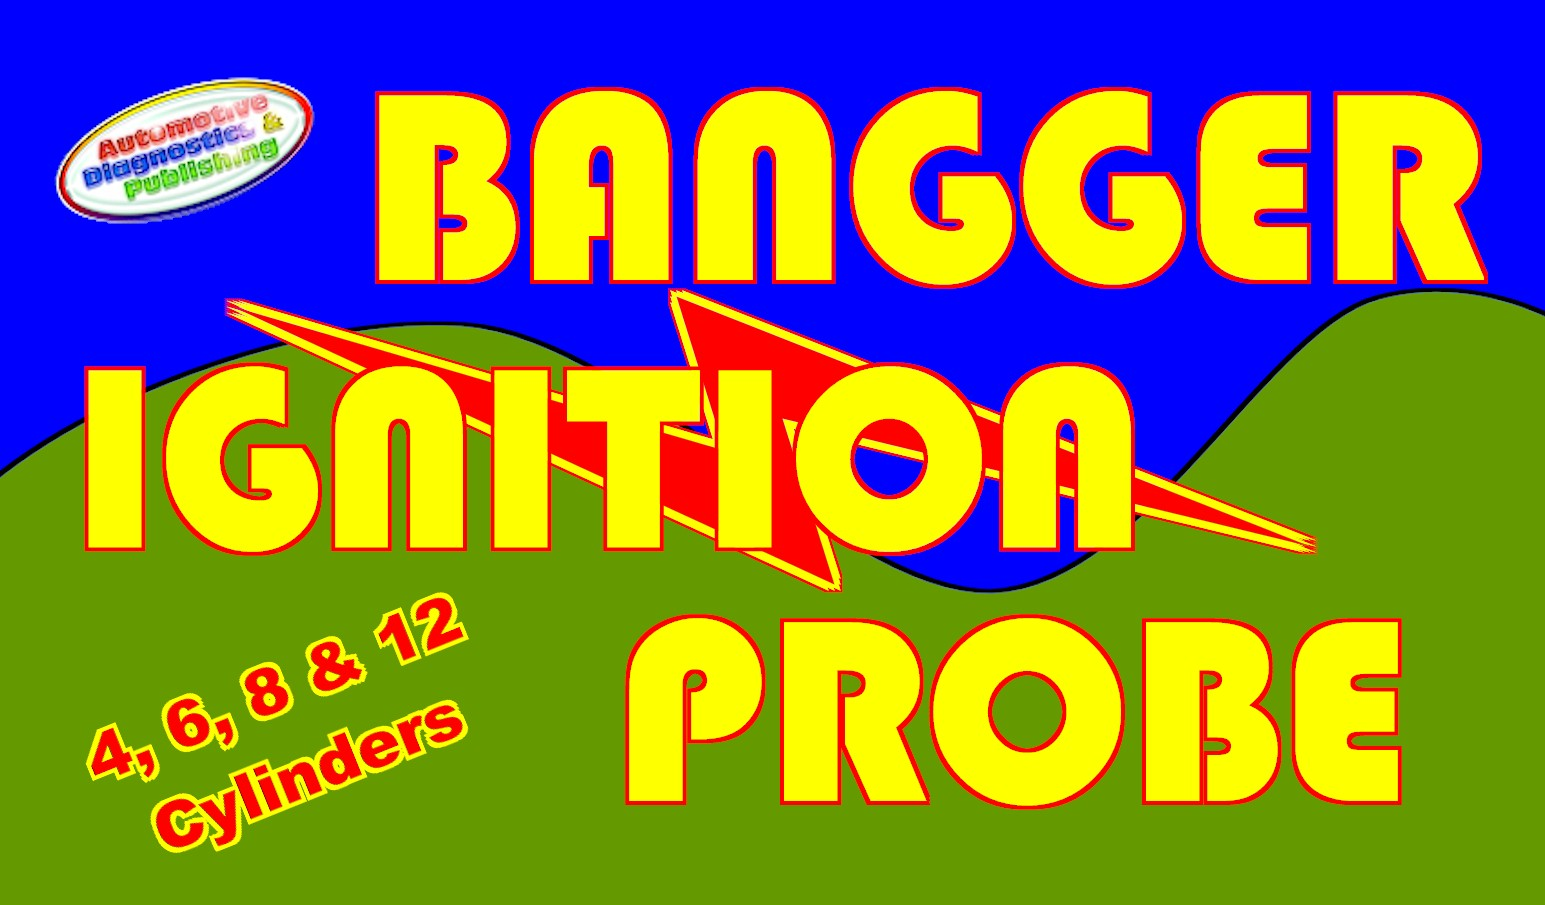 Bangger ignition probe logo